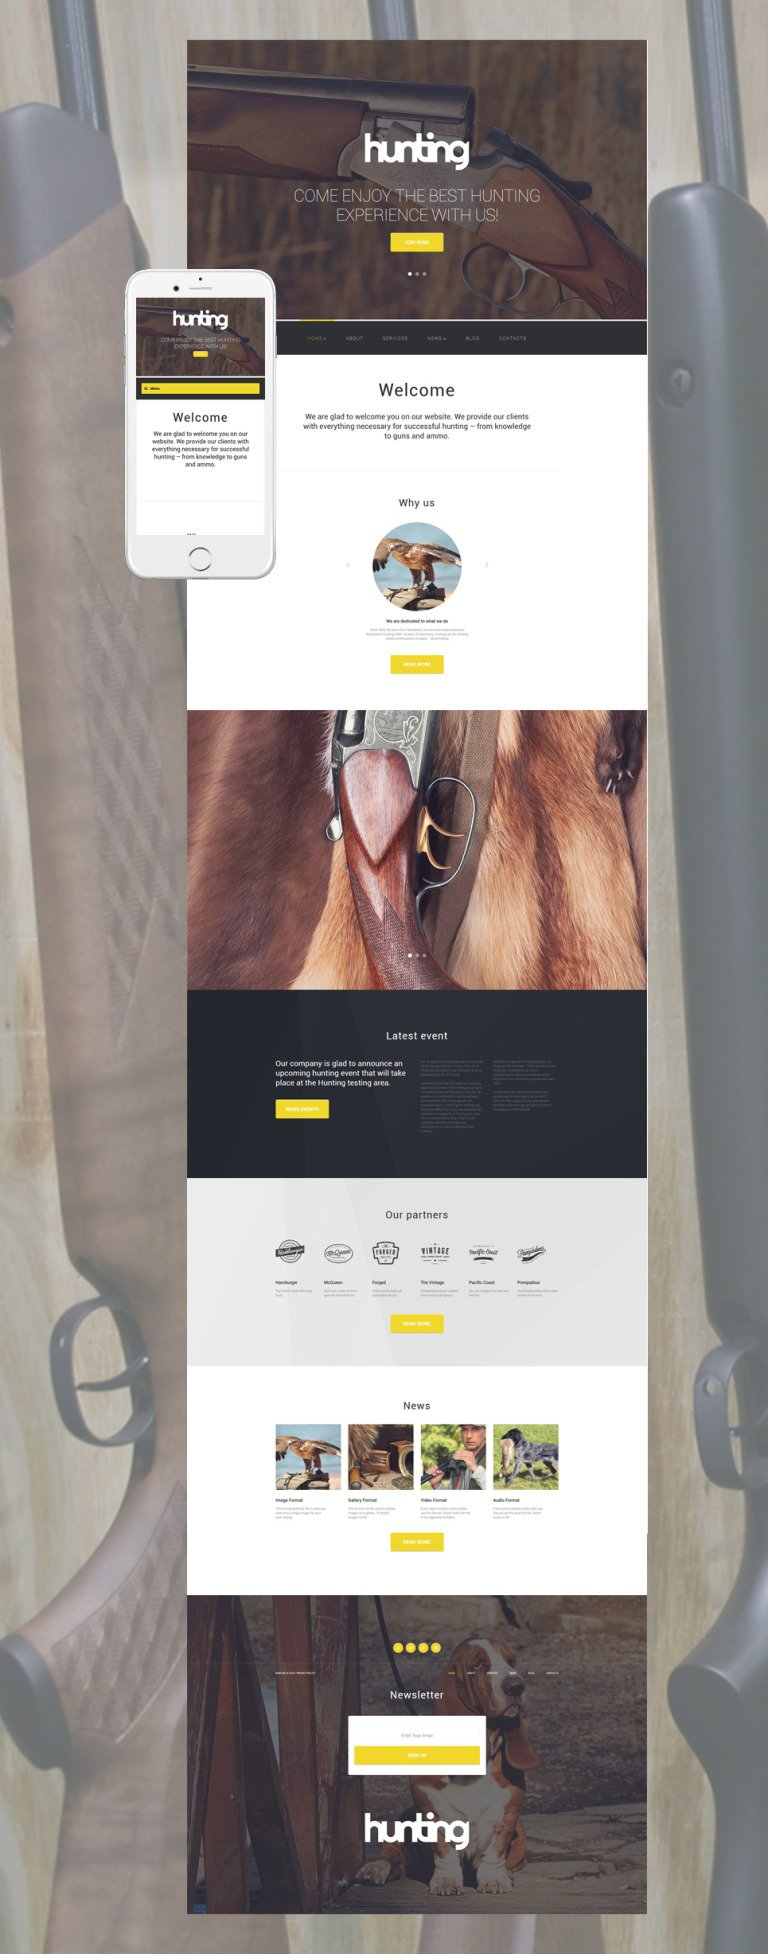 Hunting Club WordPress Theme New Screenshots BIG